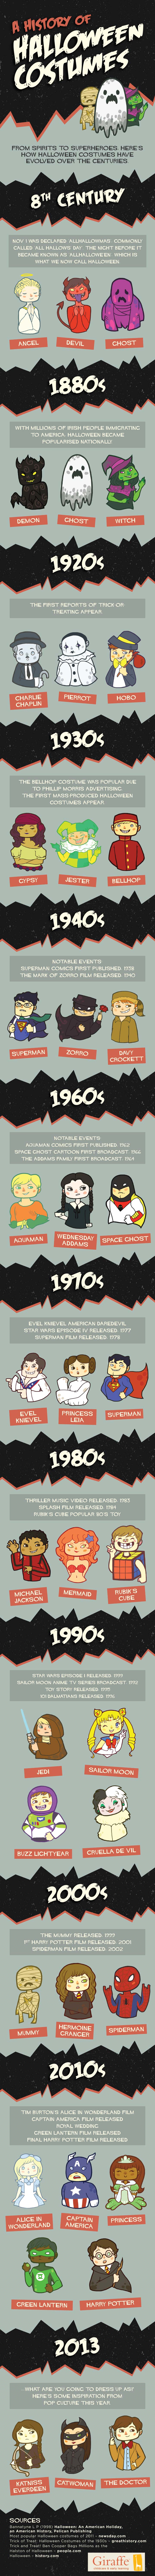 Halloween Costumes History-Infographic